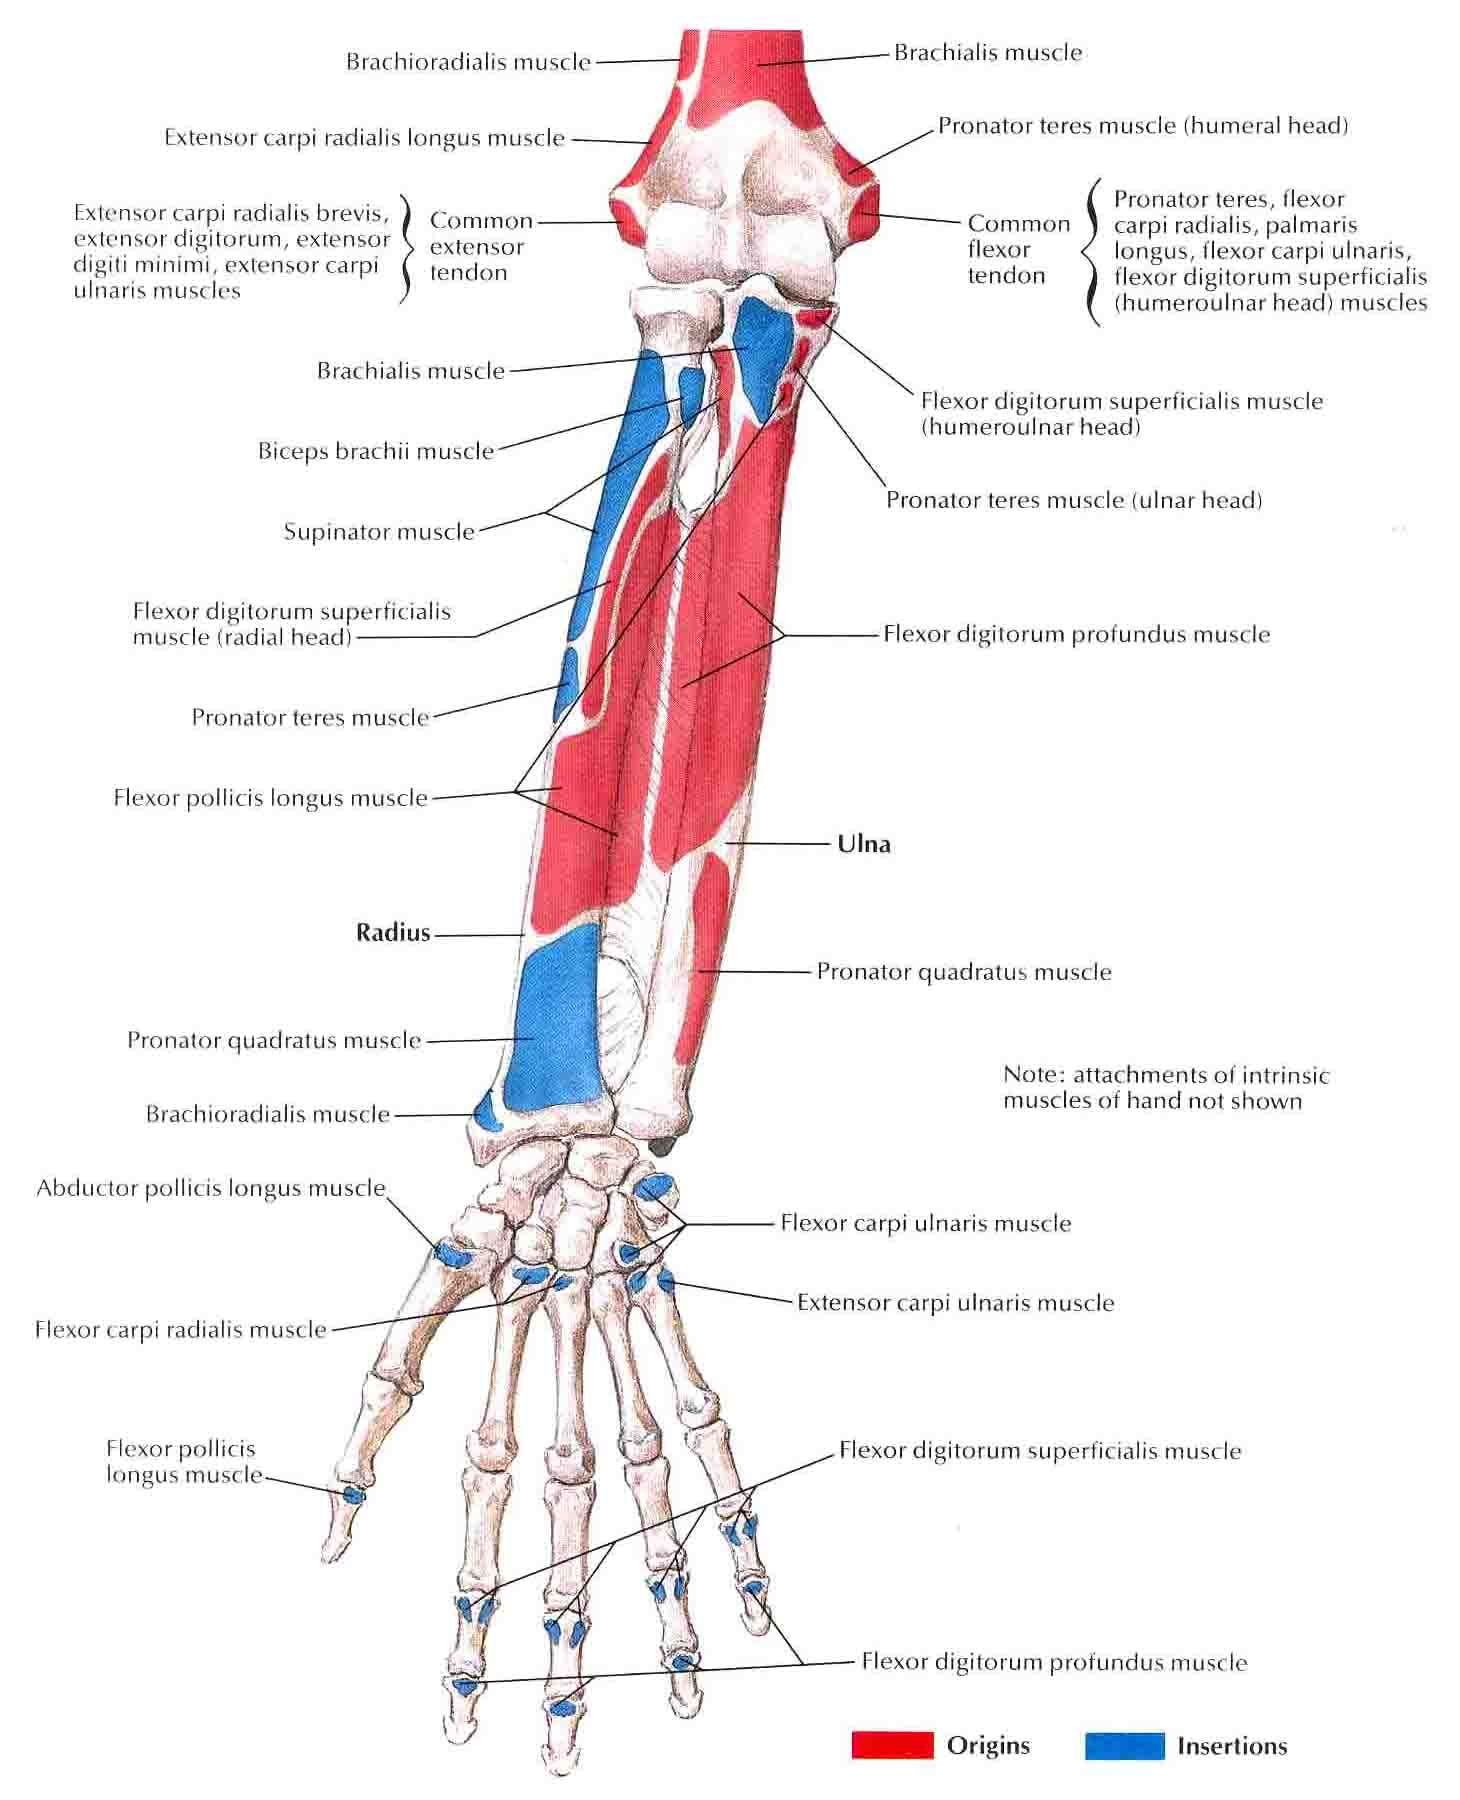 muscles of forearm origin and insertion - Google 검색   anatomy ...